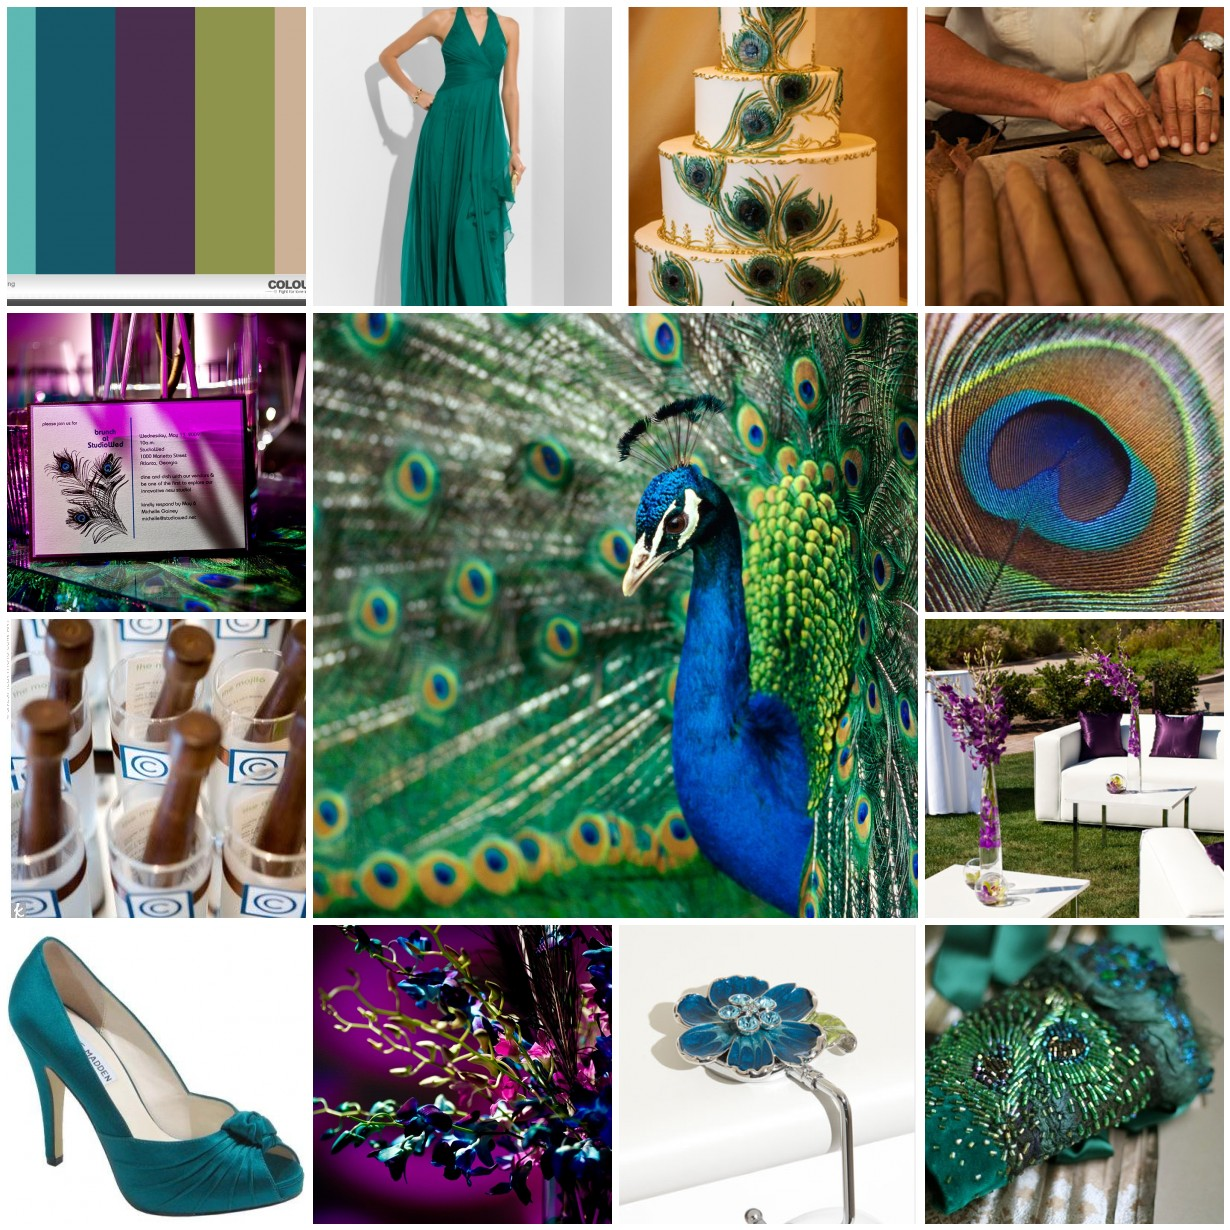 peacock theme wedding inspiration « Sparkling Events & Designs